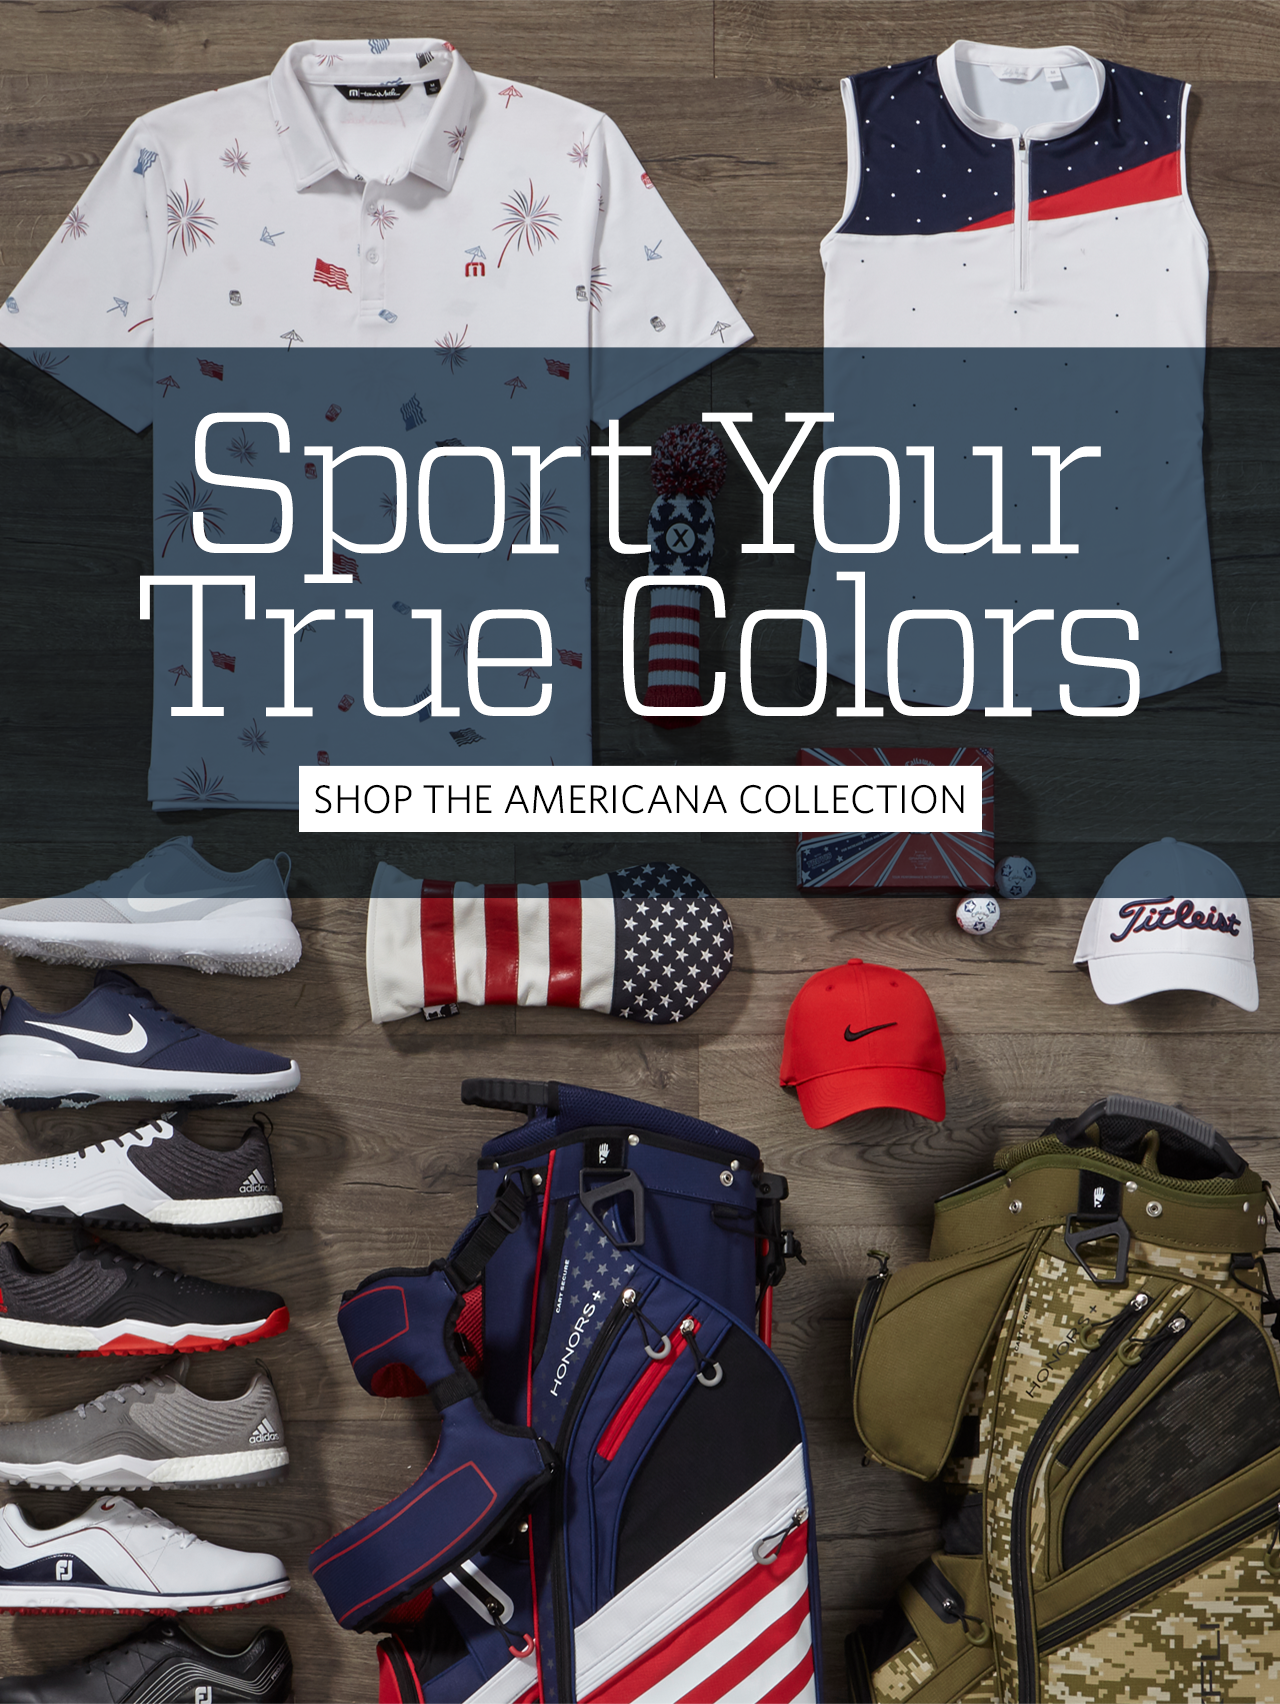 Sport your true colors with americana apparel and accessories